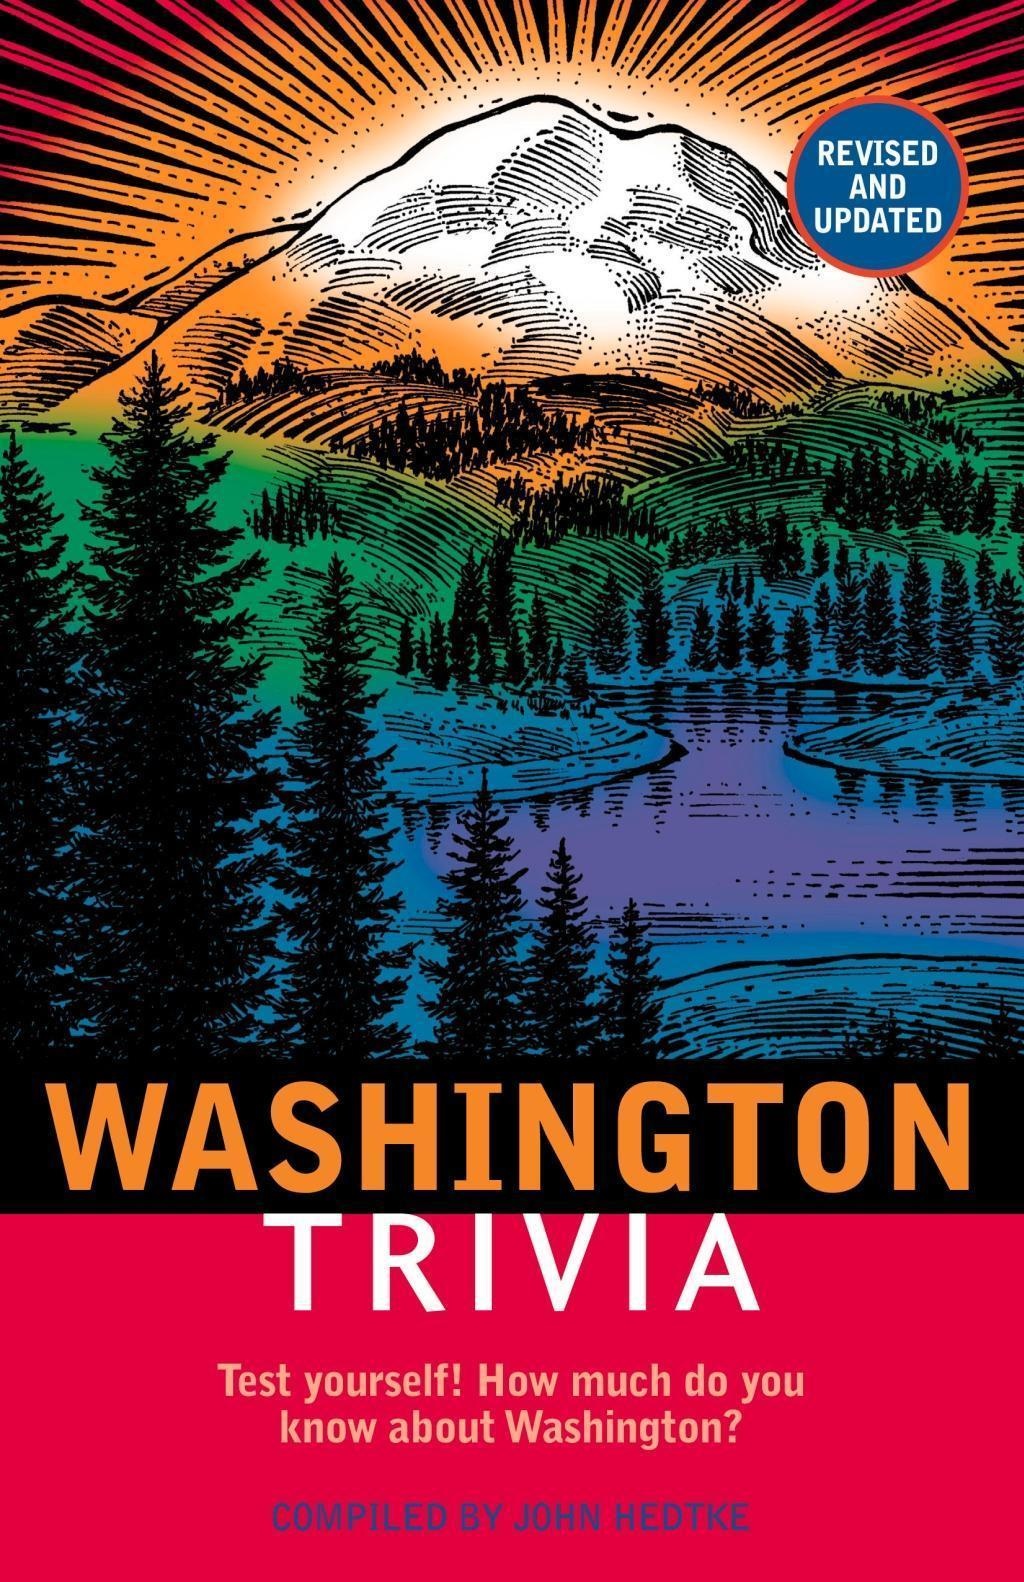 Washington Trivia